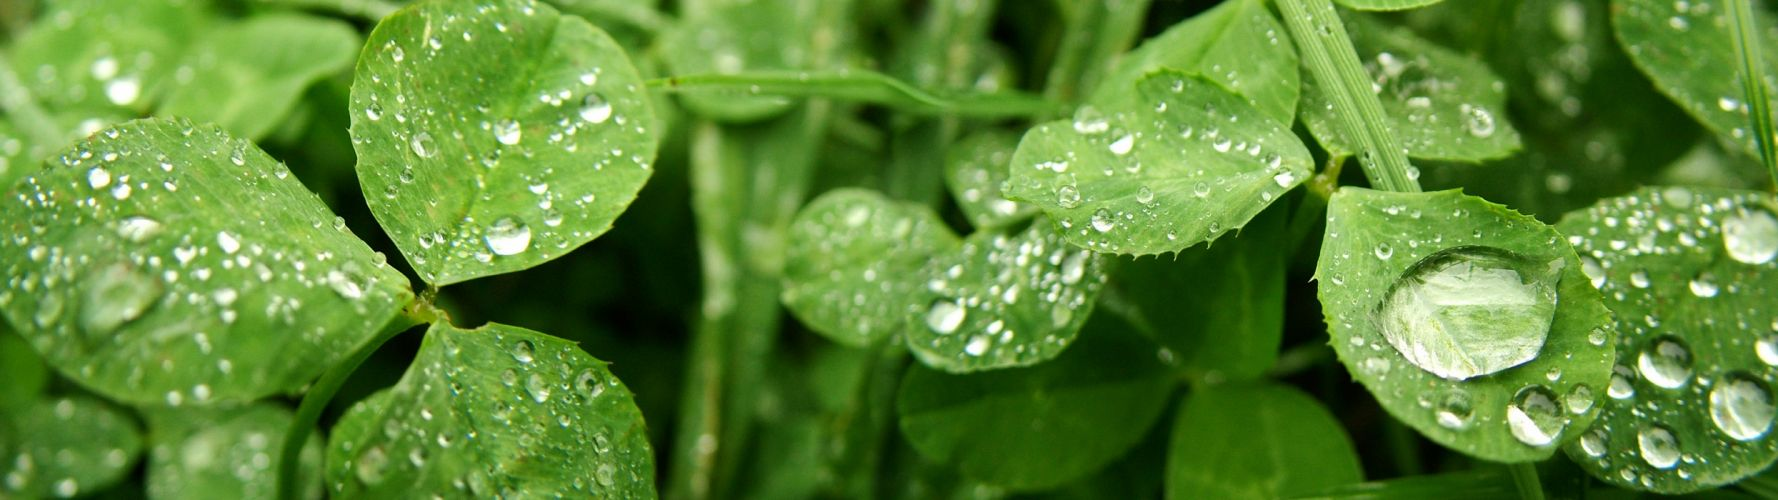 close-up leaves water drops clover wallpaper